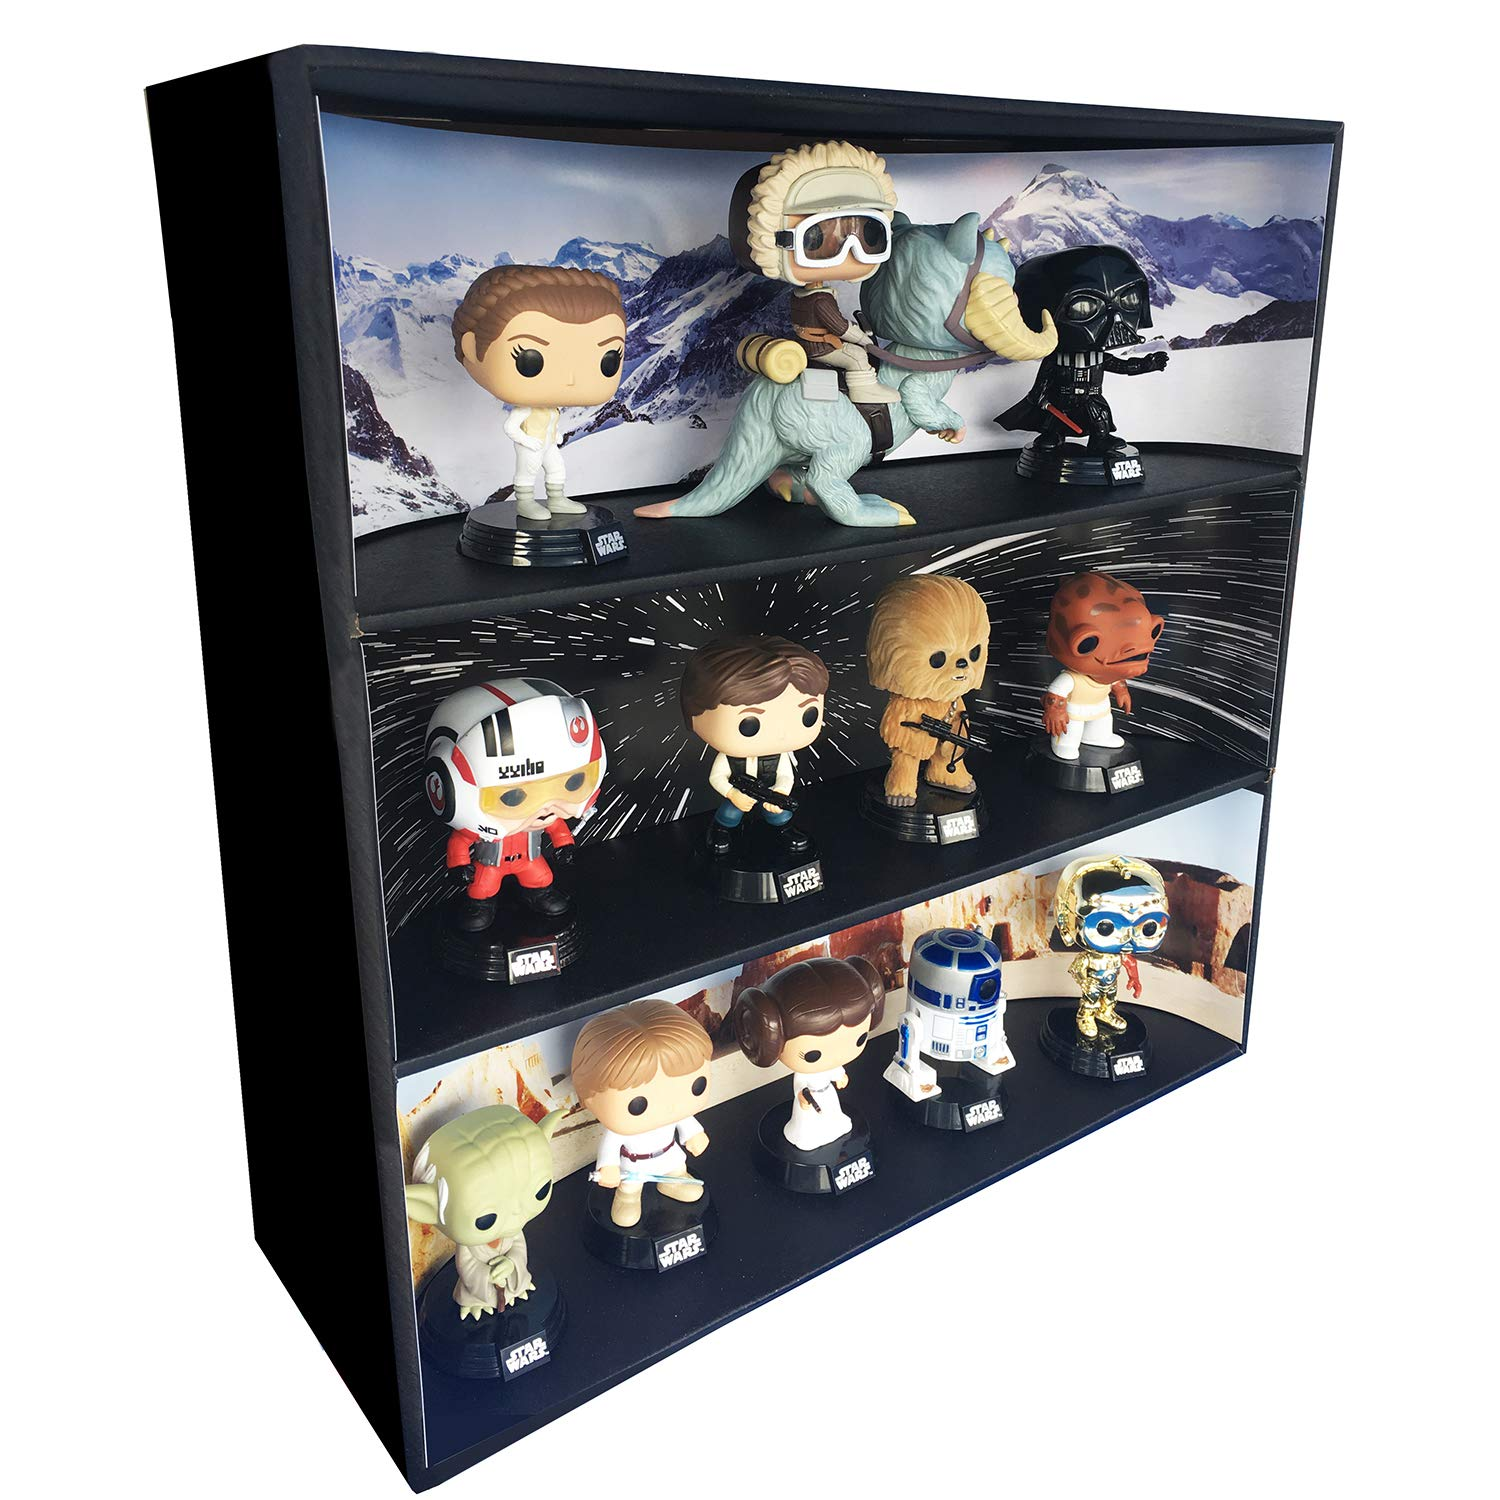 1 Display Geek Stackable Toy Shelf for 4 in. Vinyl Collectibles with 3 Backdrop Inserts, Black Corrugated Cardboard by Display Geek, Inc. (Image #1)